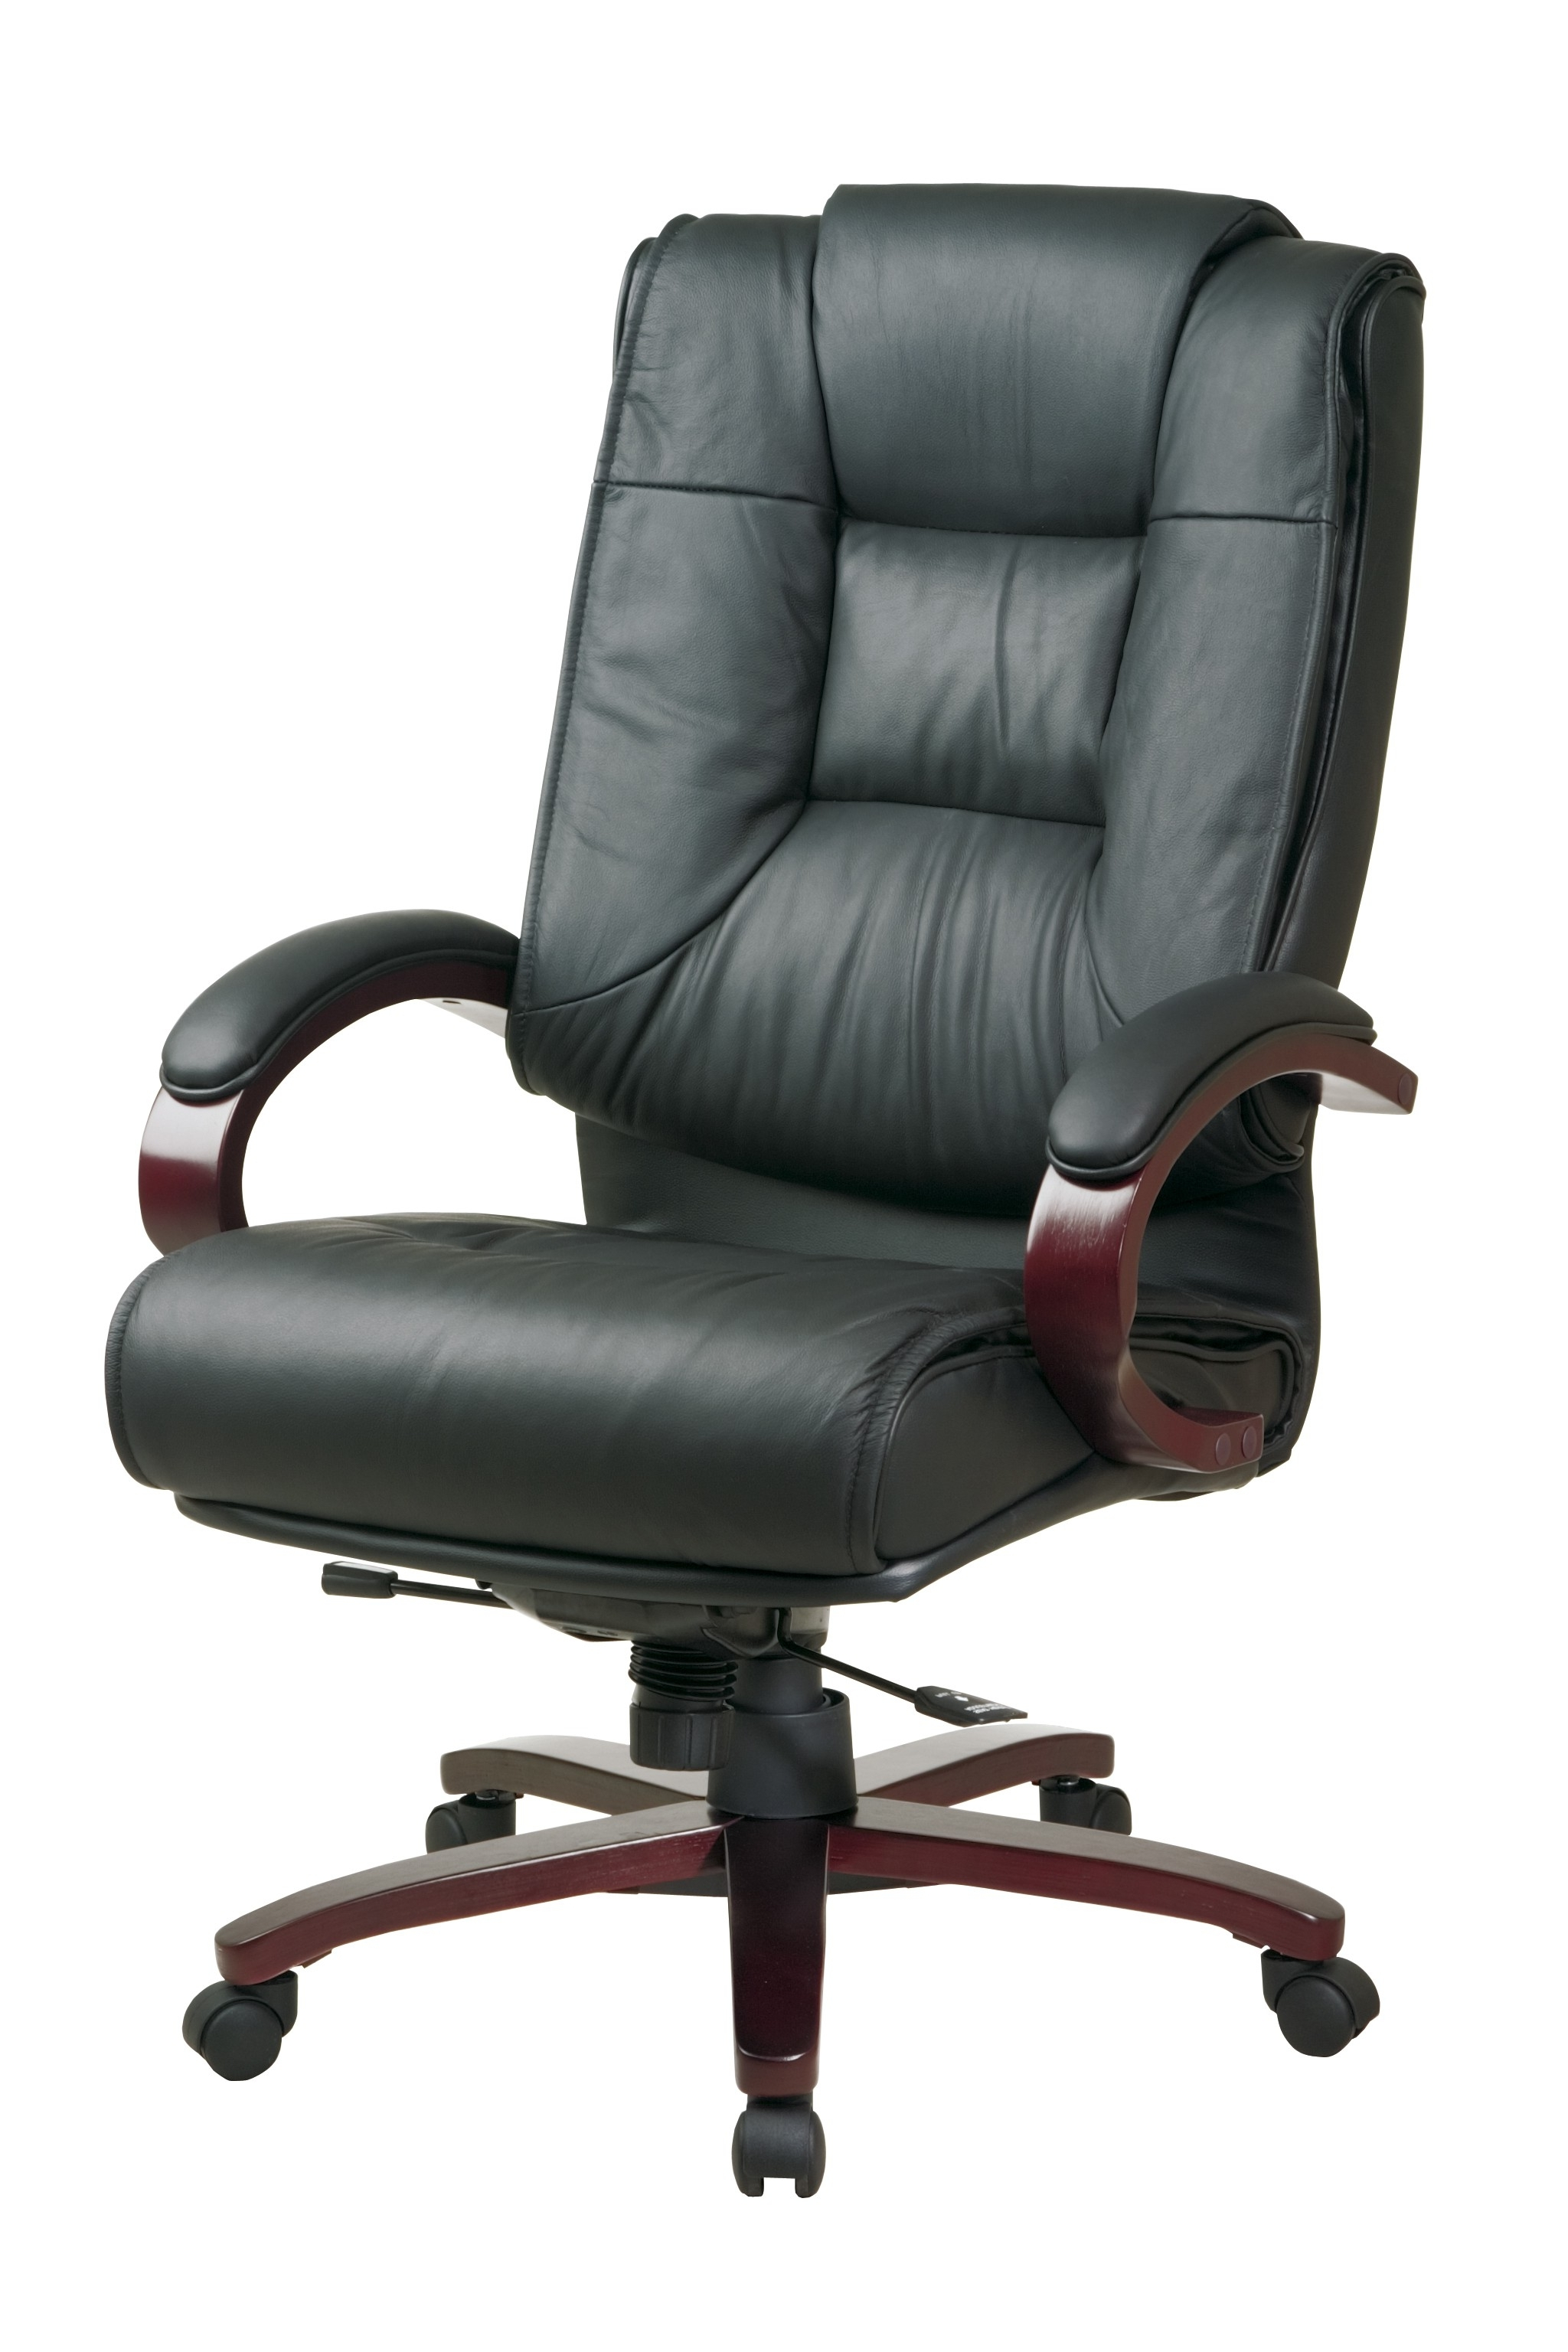 Most Recently Released Office: Office Chairs Ideas With Black Leather Executive Chair Inside Wood And Leather Executive Office Chairs (View 8 of 20)